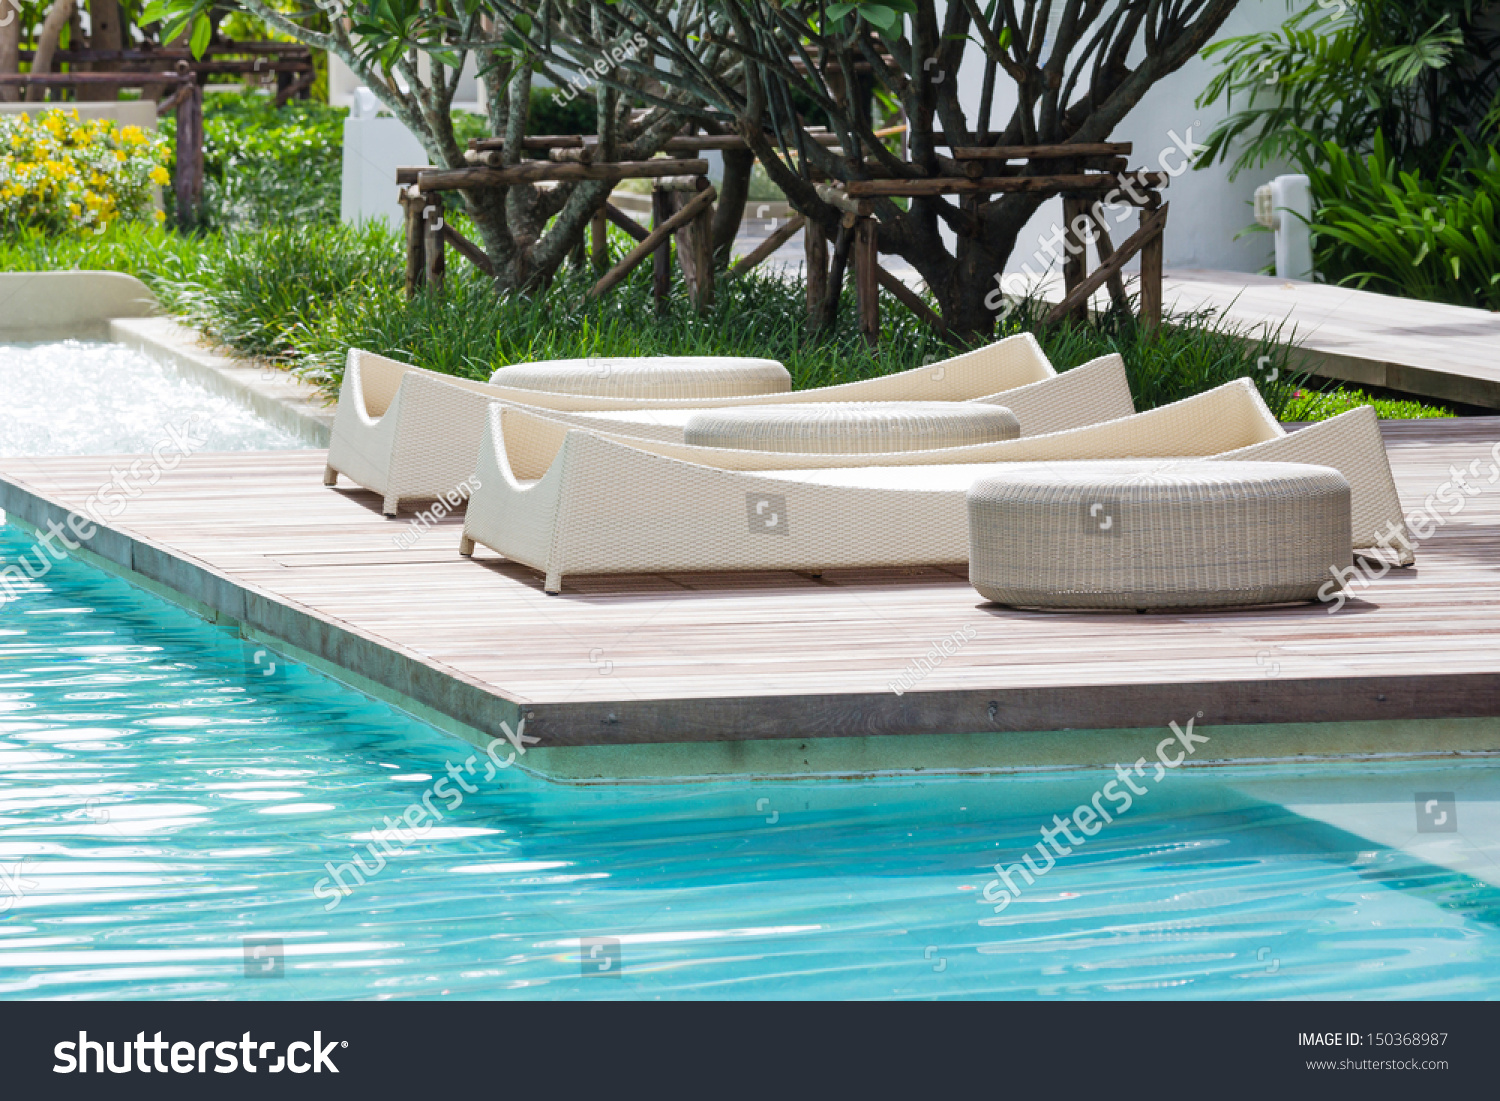 Zwembad Bed Pool Bed At The Swimming Pool Stock Photo 150368987